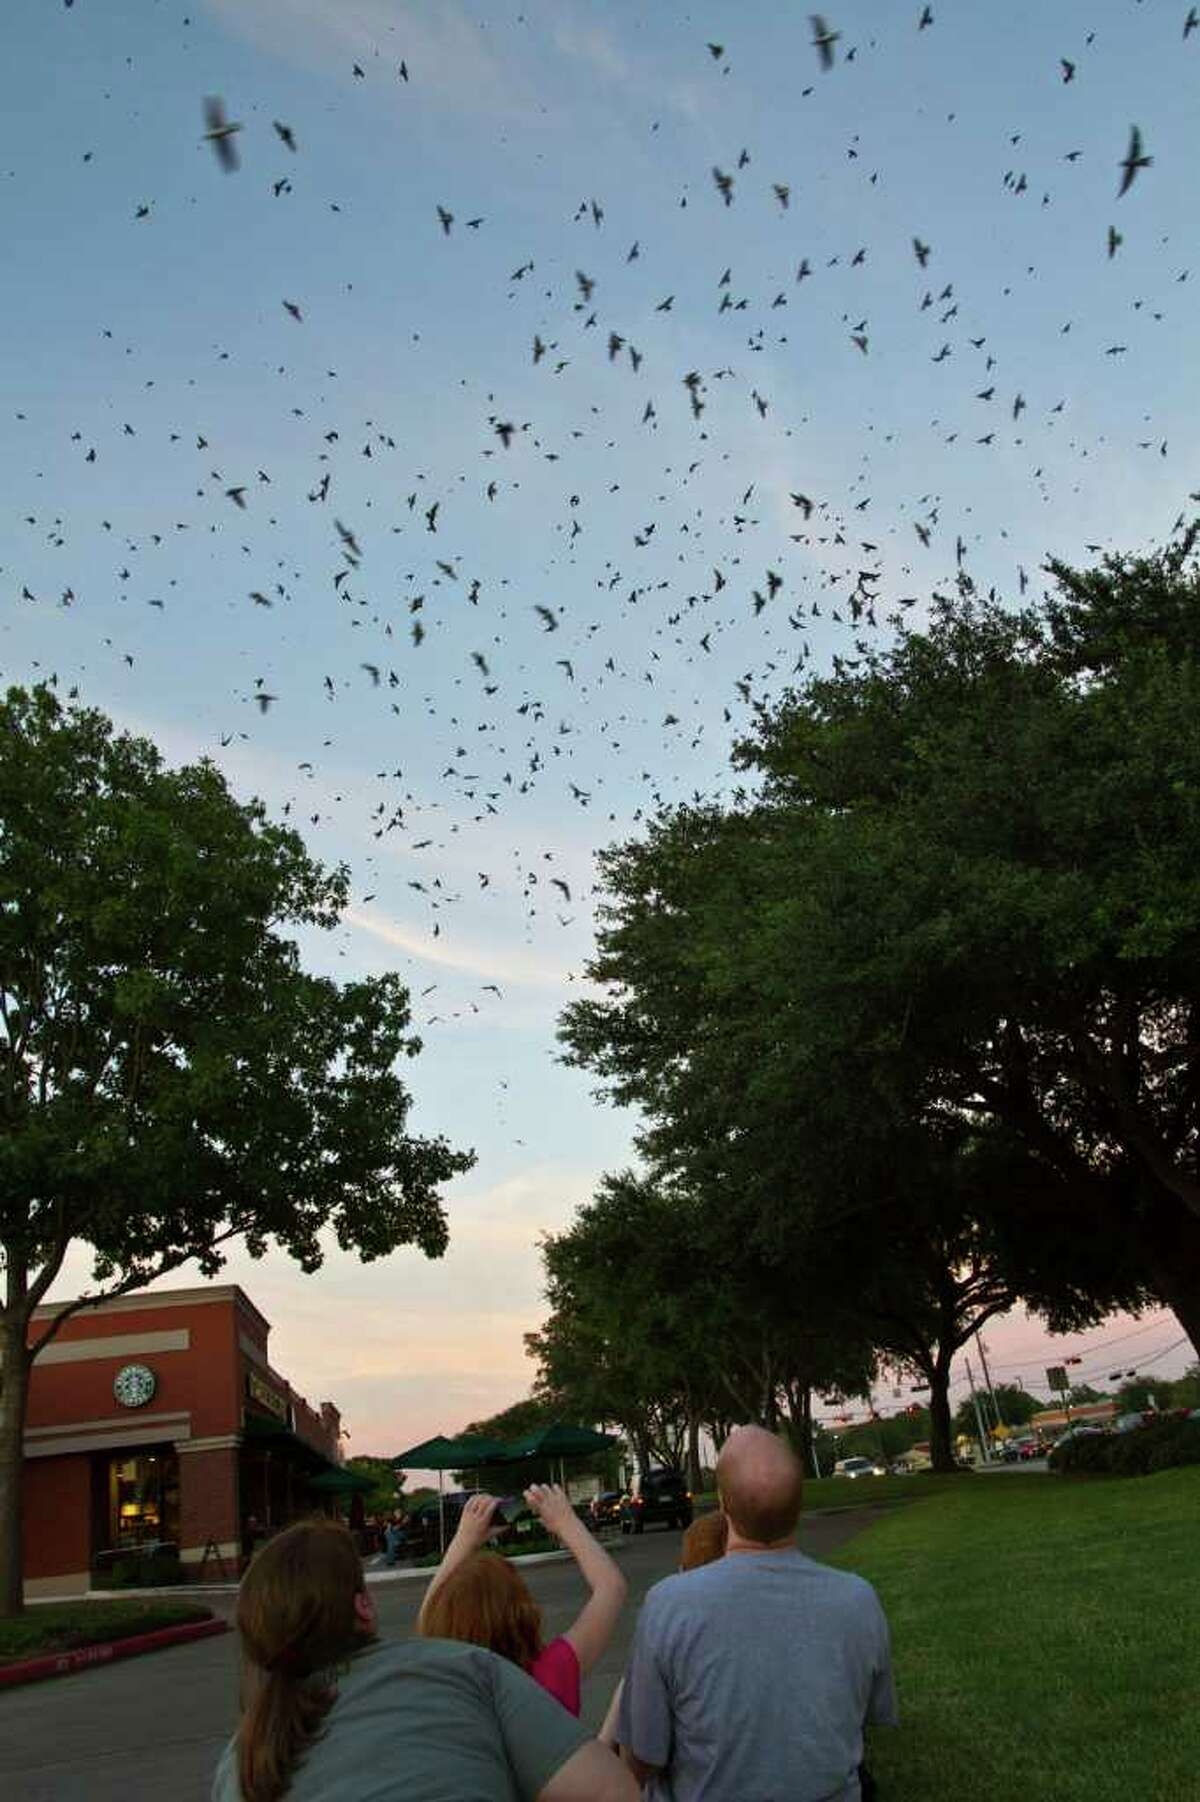 Thousands of purple martins come in to roost in oak trees on their annual migration to South America across from Willowbrook Mall. Steve and Jane Stone and the family watch the birds. Photo Credit: Kathy Adams Clark. Restricted use.